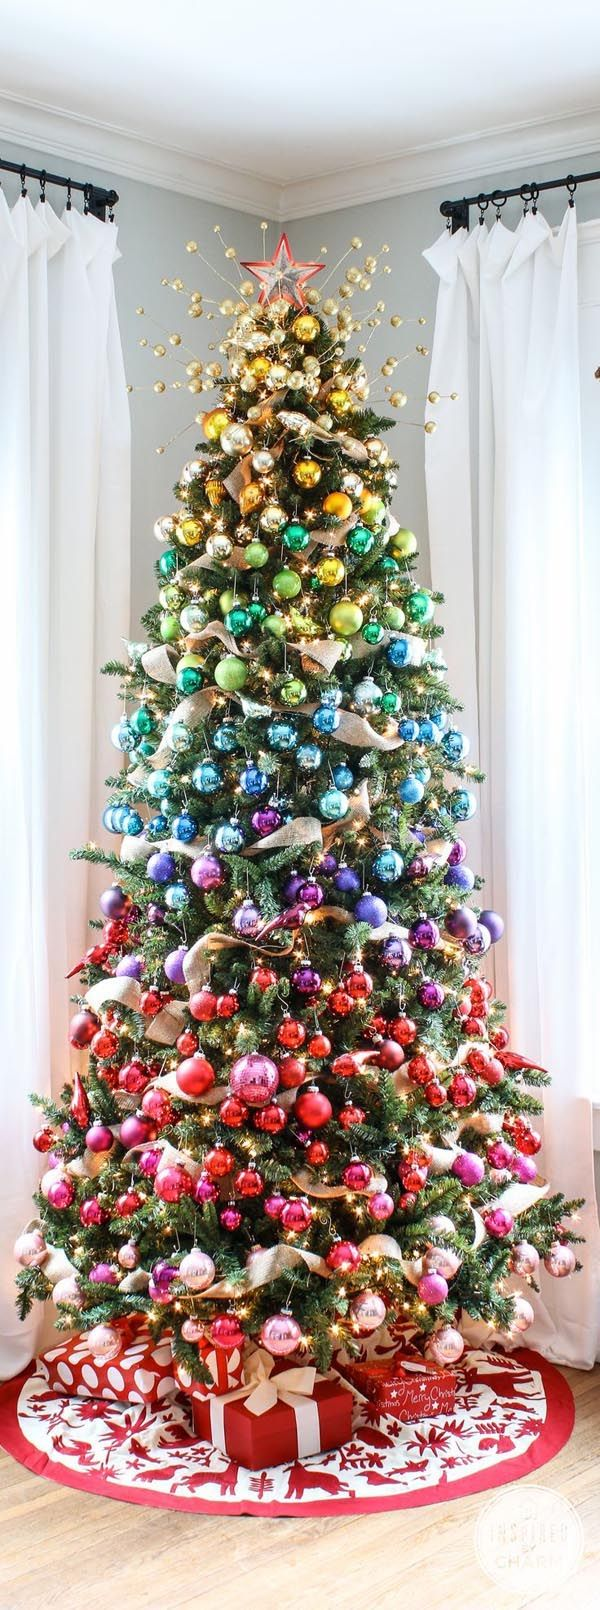 5 Christmas Tree Ideas Kids and Adults Will Both Love -- So easy and pretty!